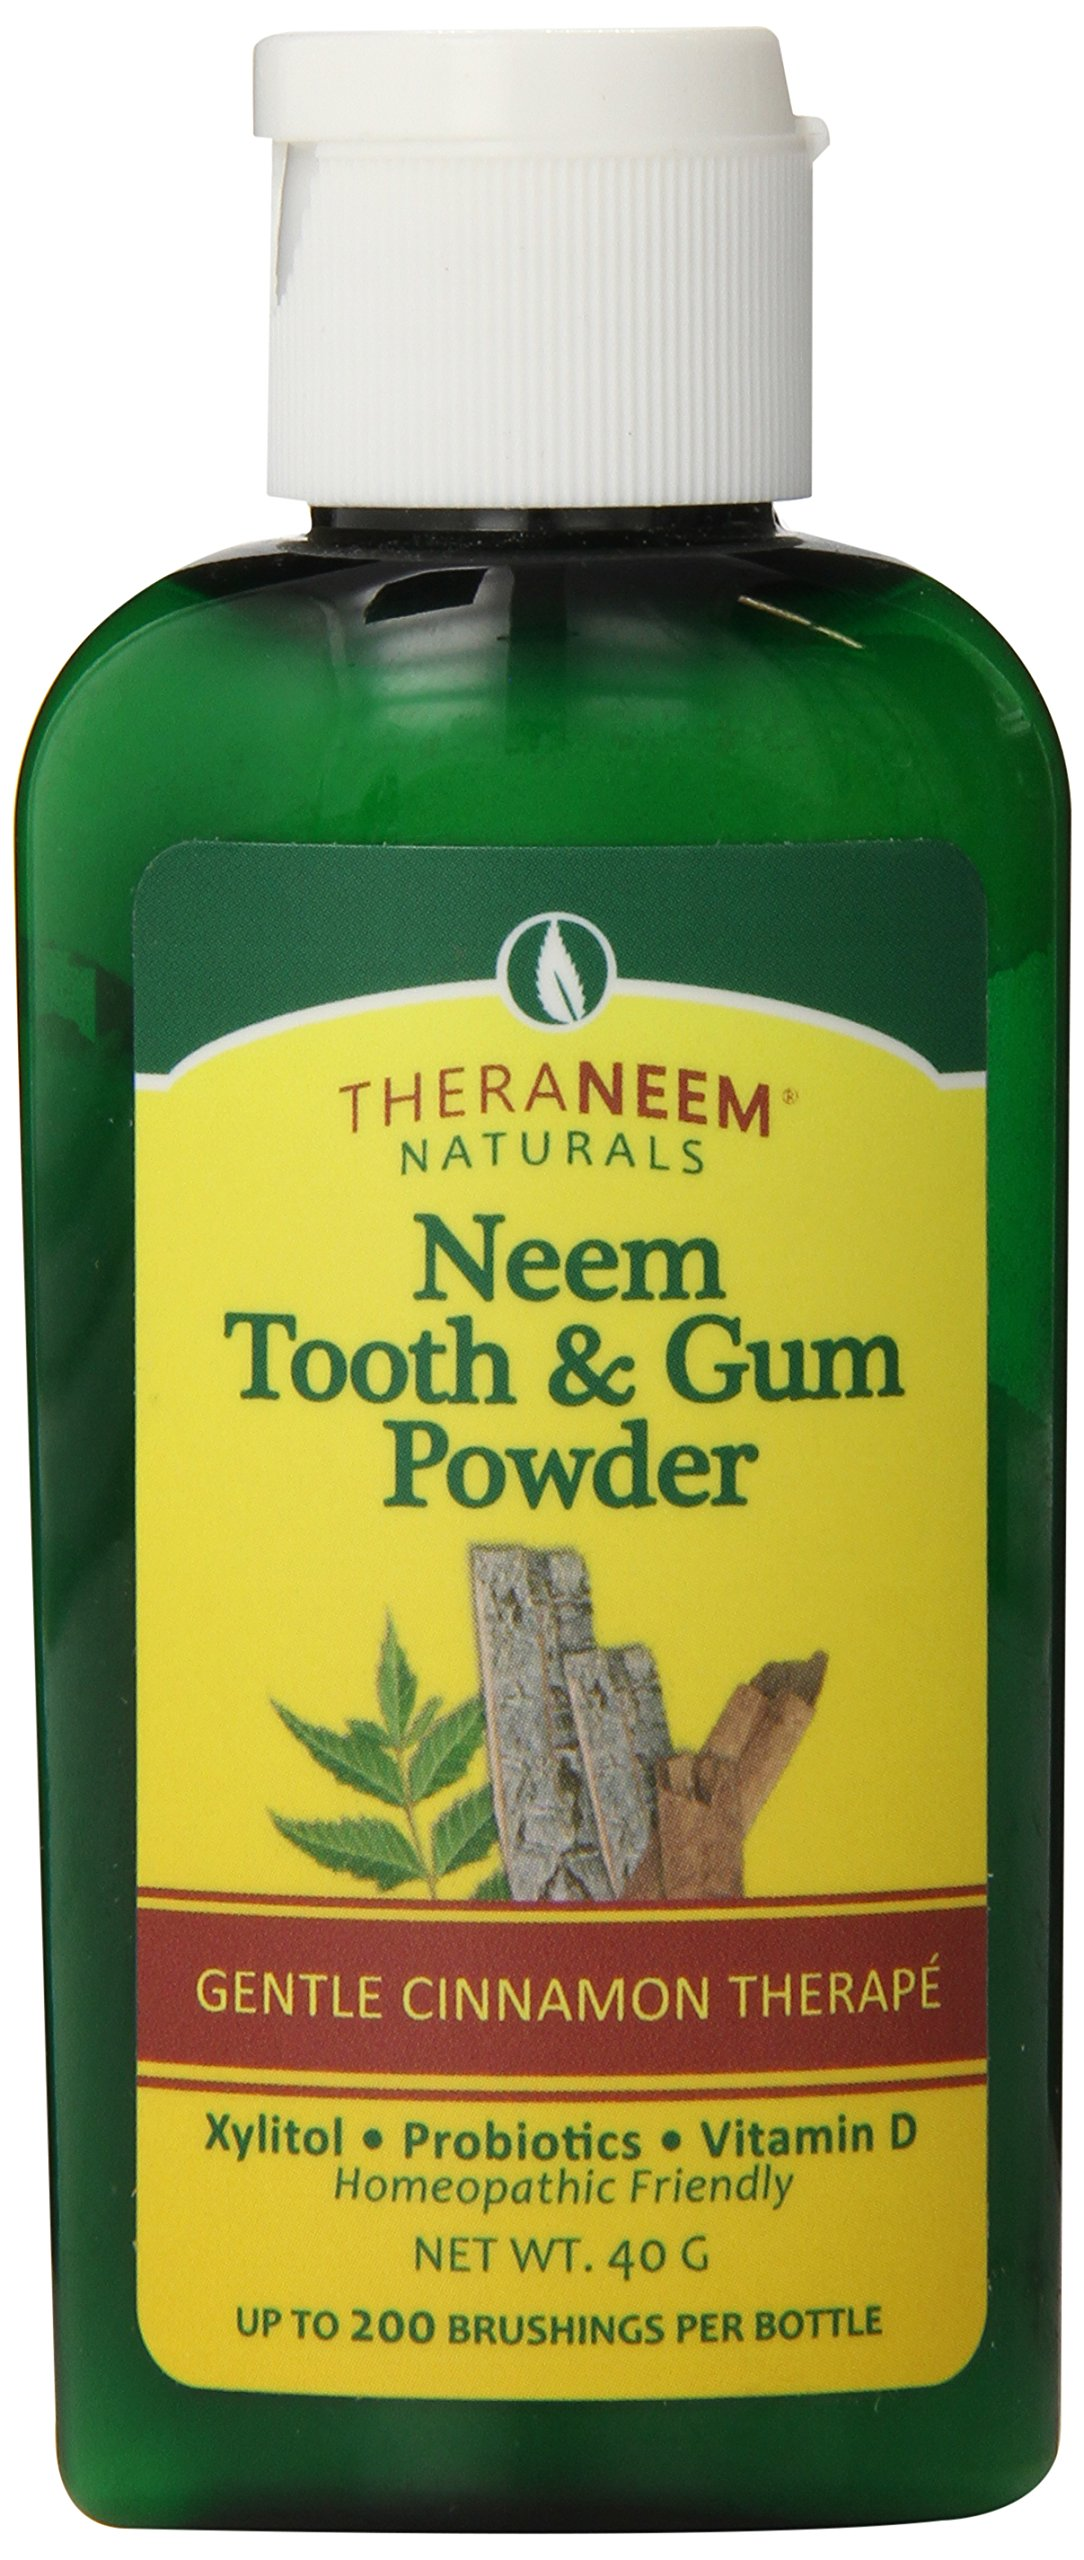 TheraNeem Tooth and Gum Powder   Supports Healthy Teeth/Gums with Probiotics, Vitamin D   Cinnamon   40 grams, 200 Uses